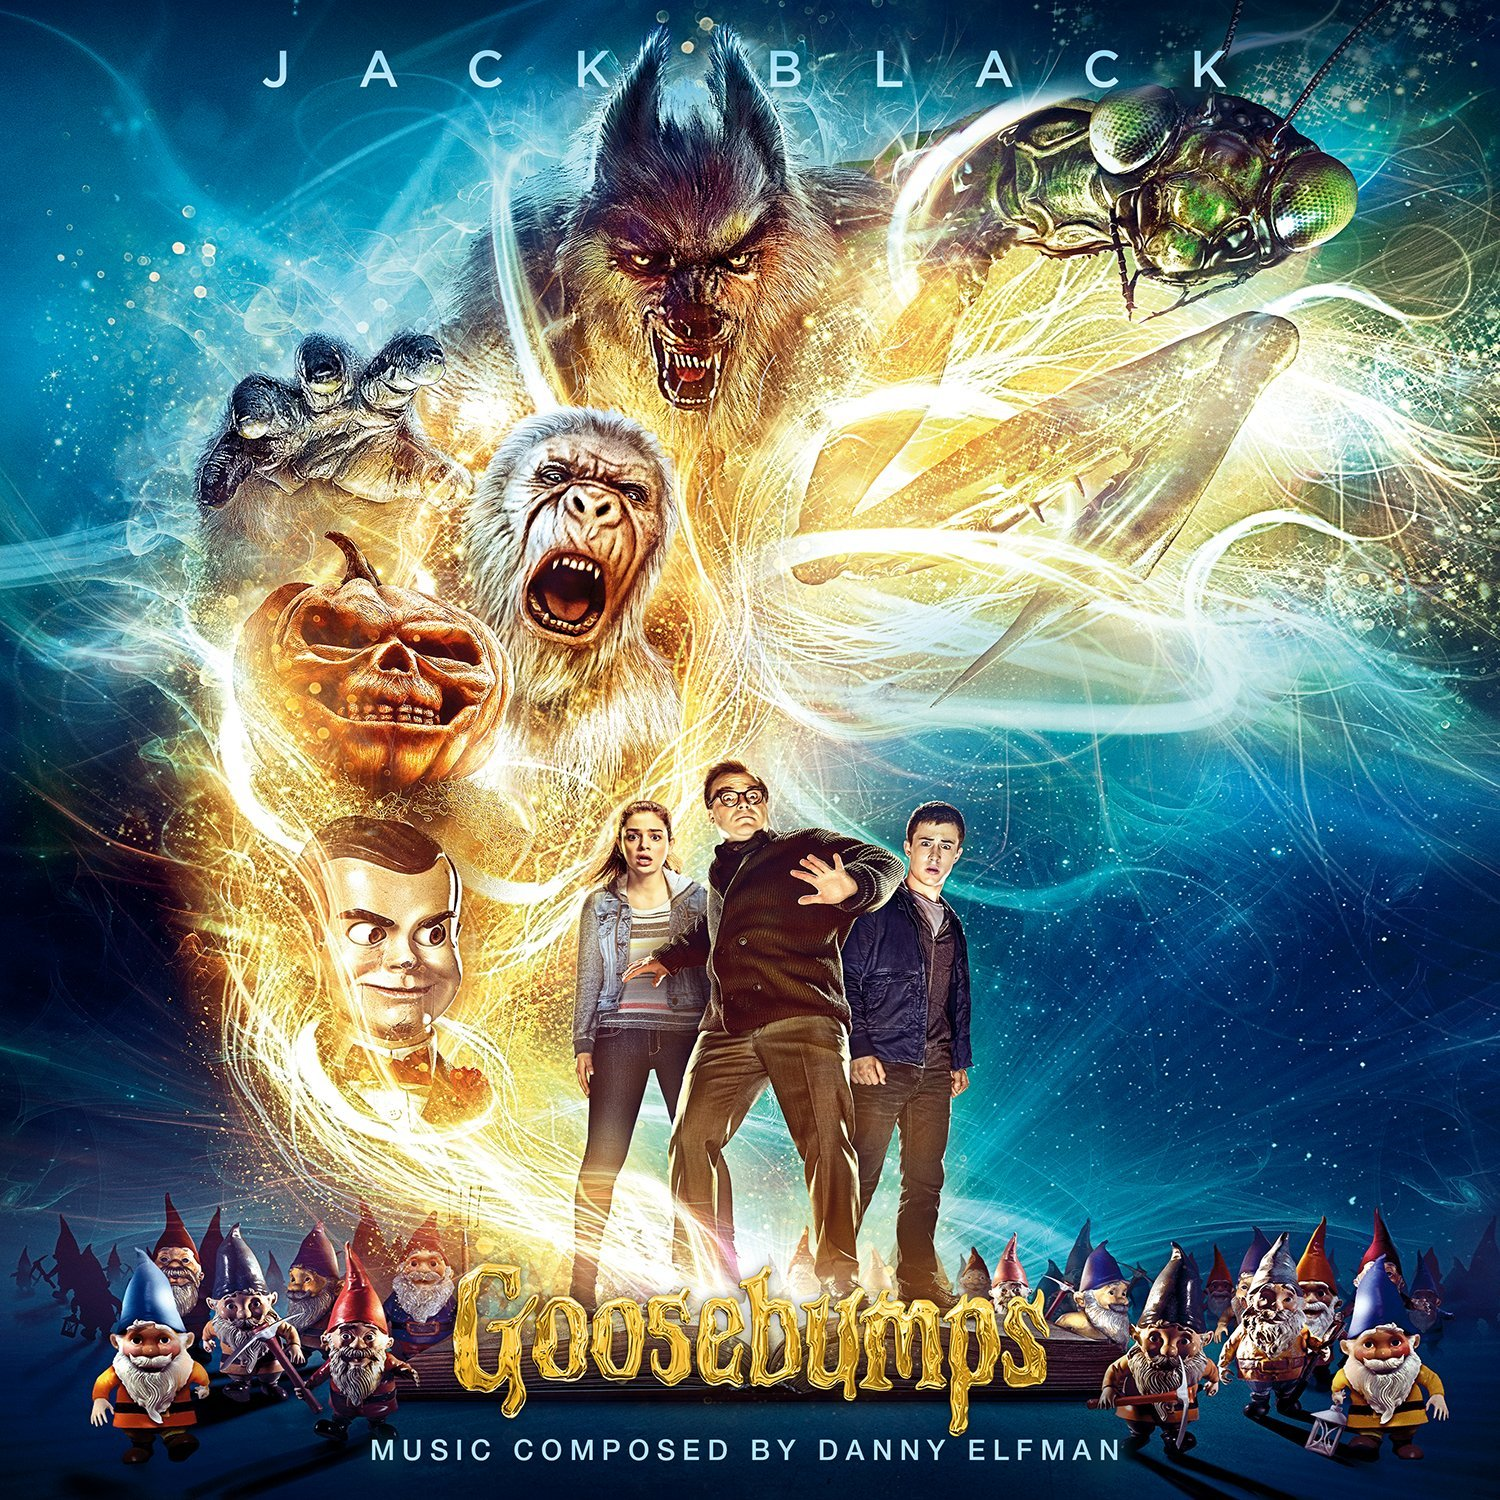 Goosebumps Original Motion Picture Soundtrack Goosebumps